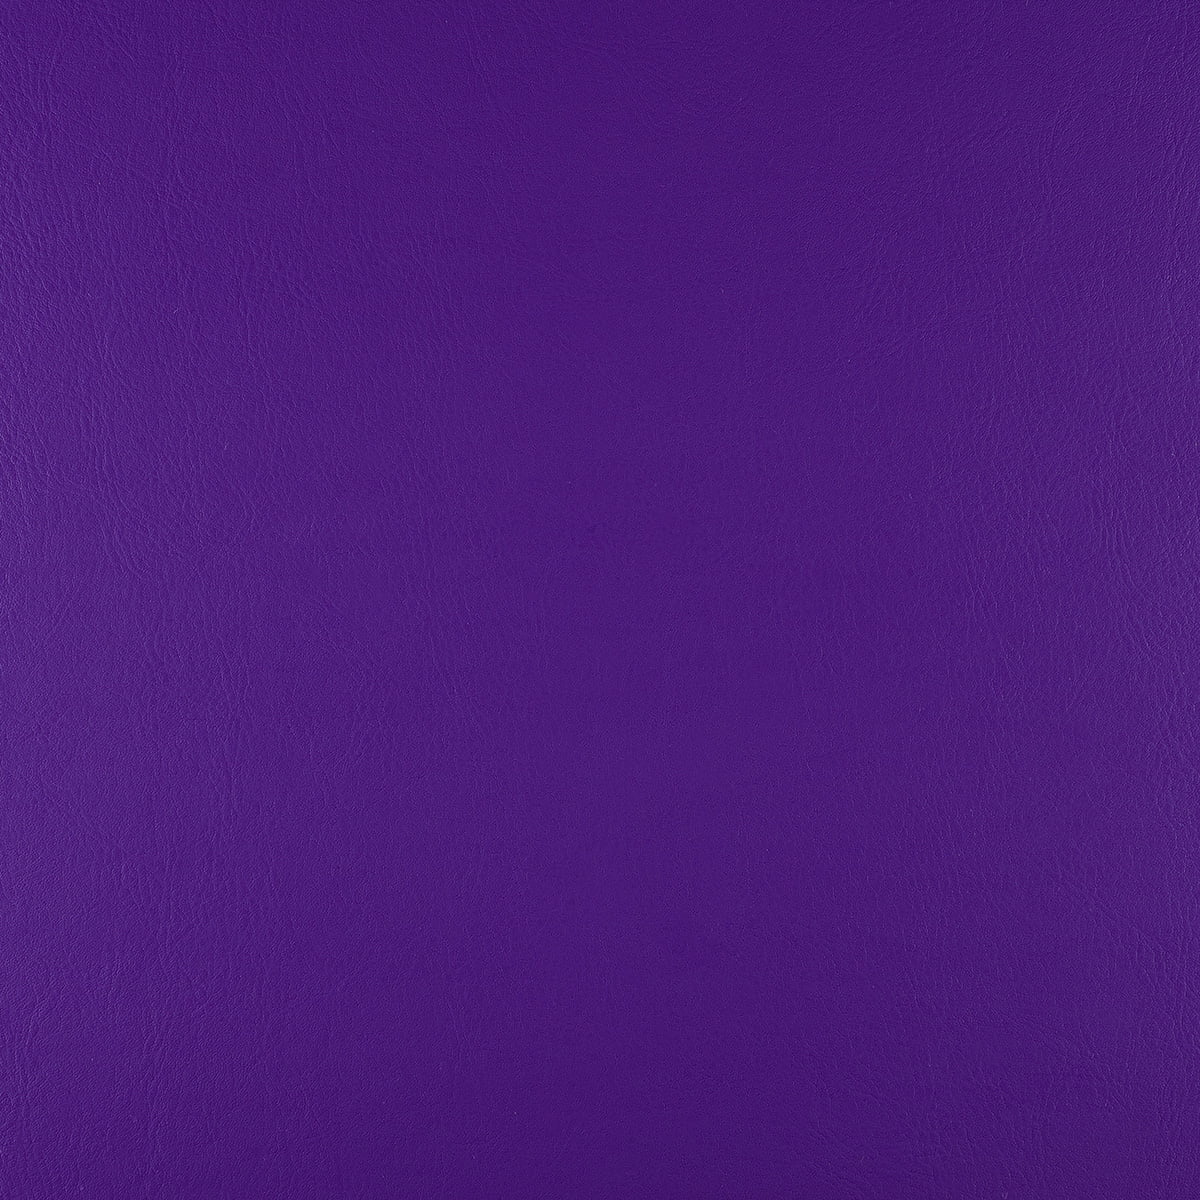 Ultraviolet - Purple - Chieftain Fabrics